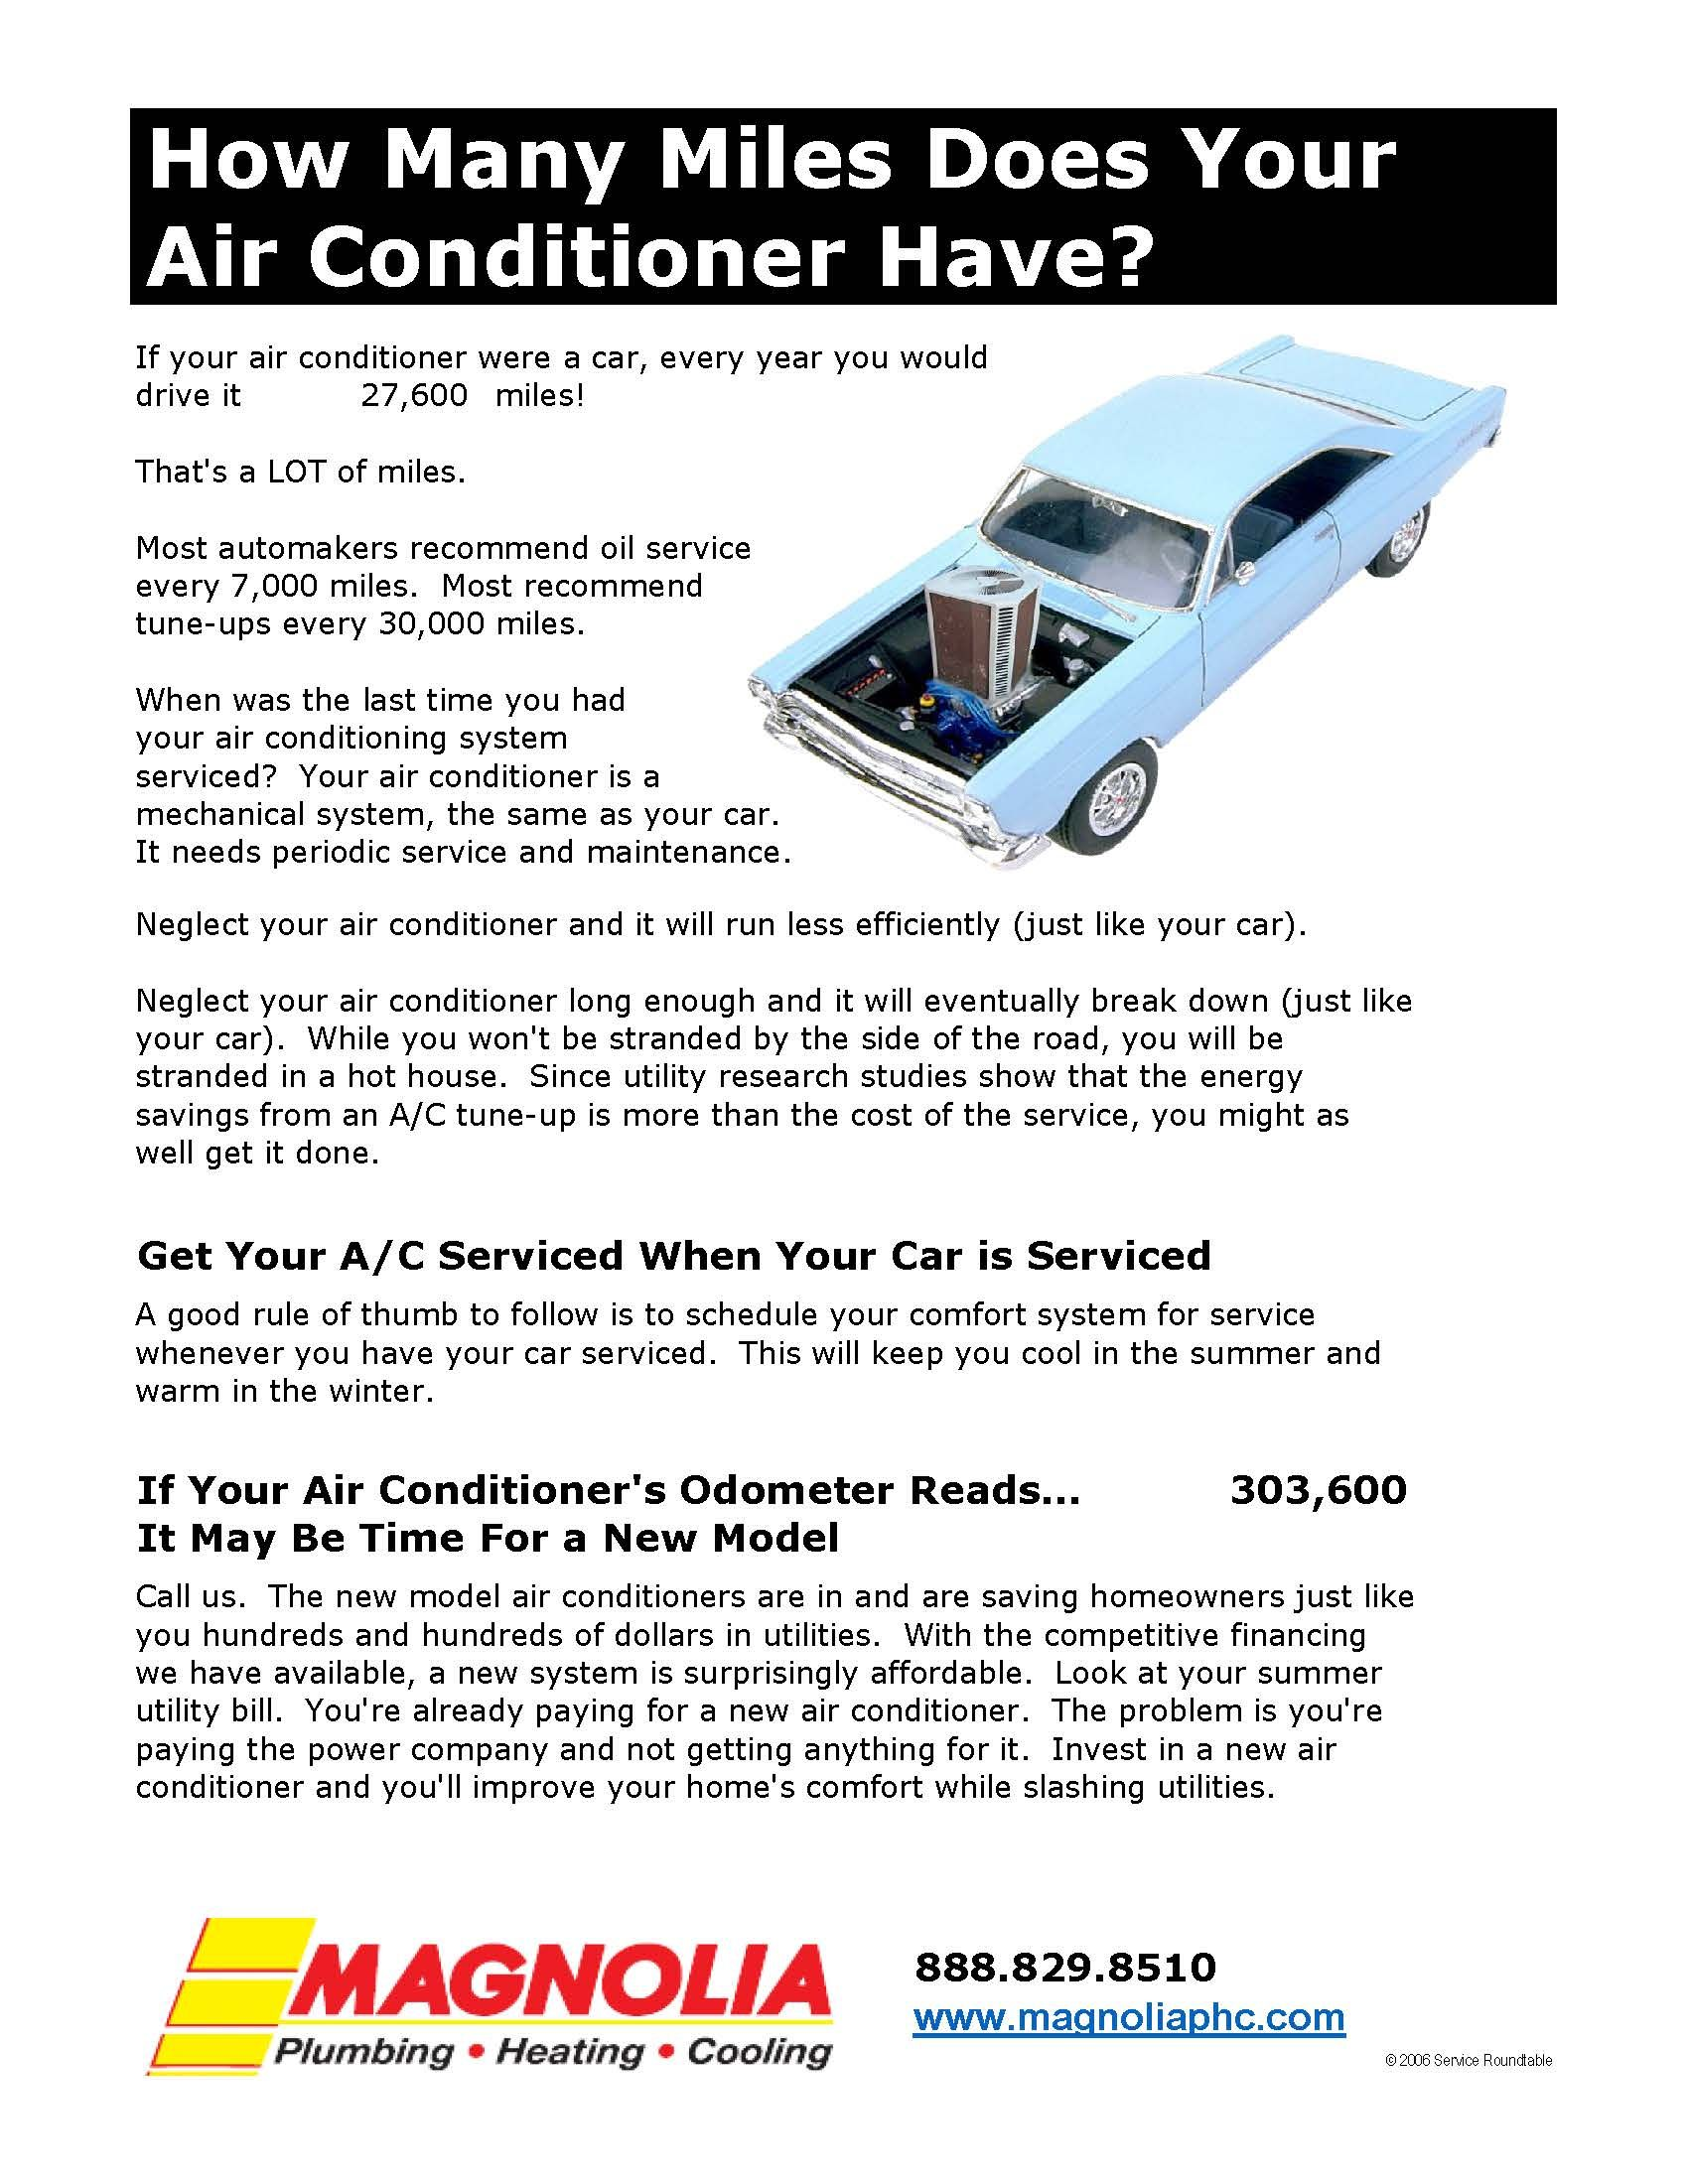 How Many Miles Does Your Ac Have Maybe Its Time To Look At